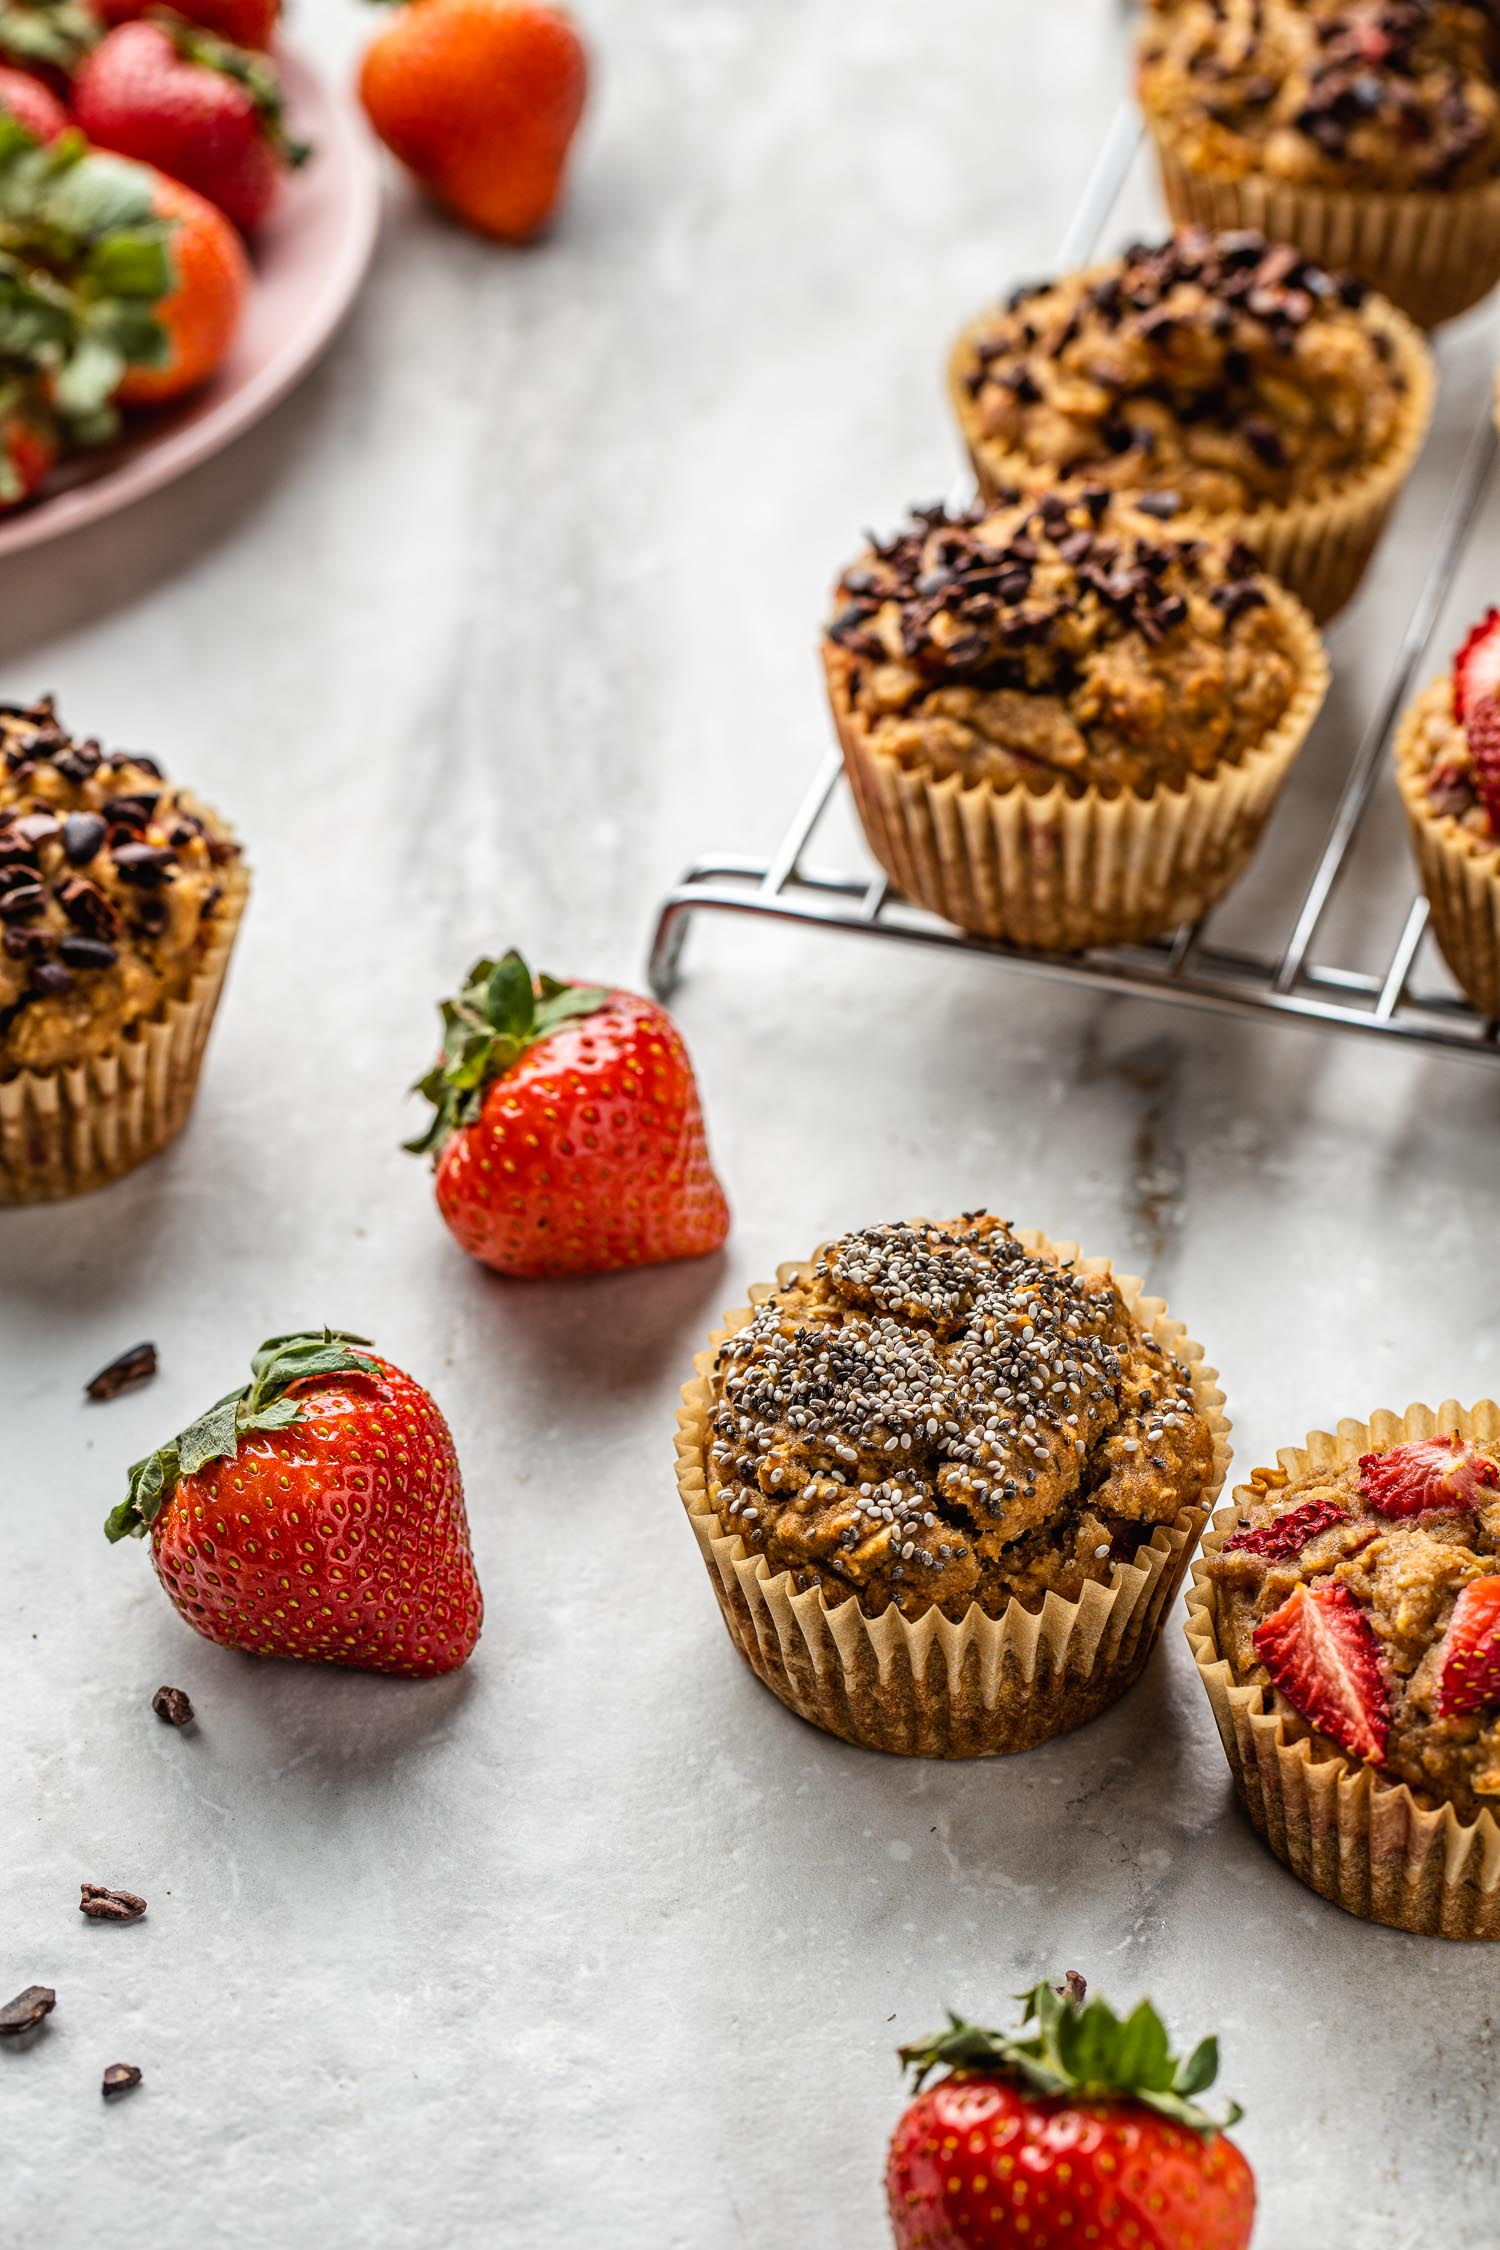 fresh baked muffins cooling on a metal rack and sitting around on a marble surface along with whole fresh strawberries